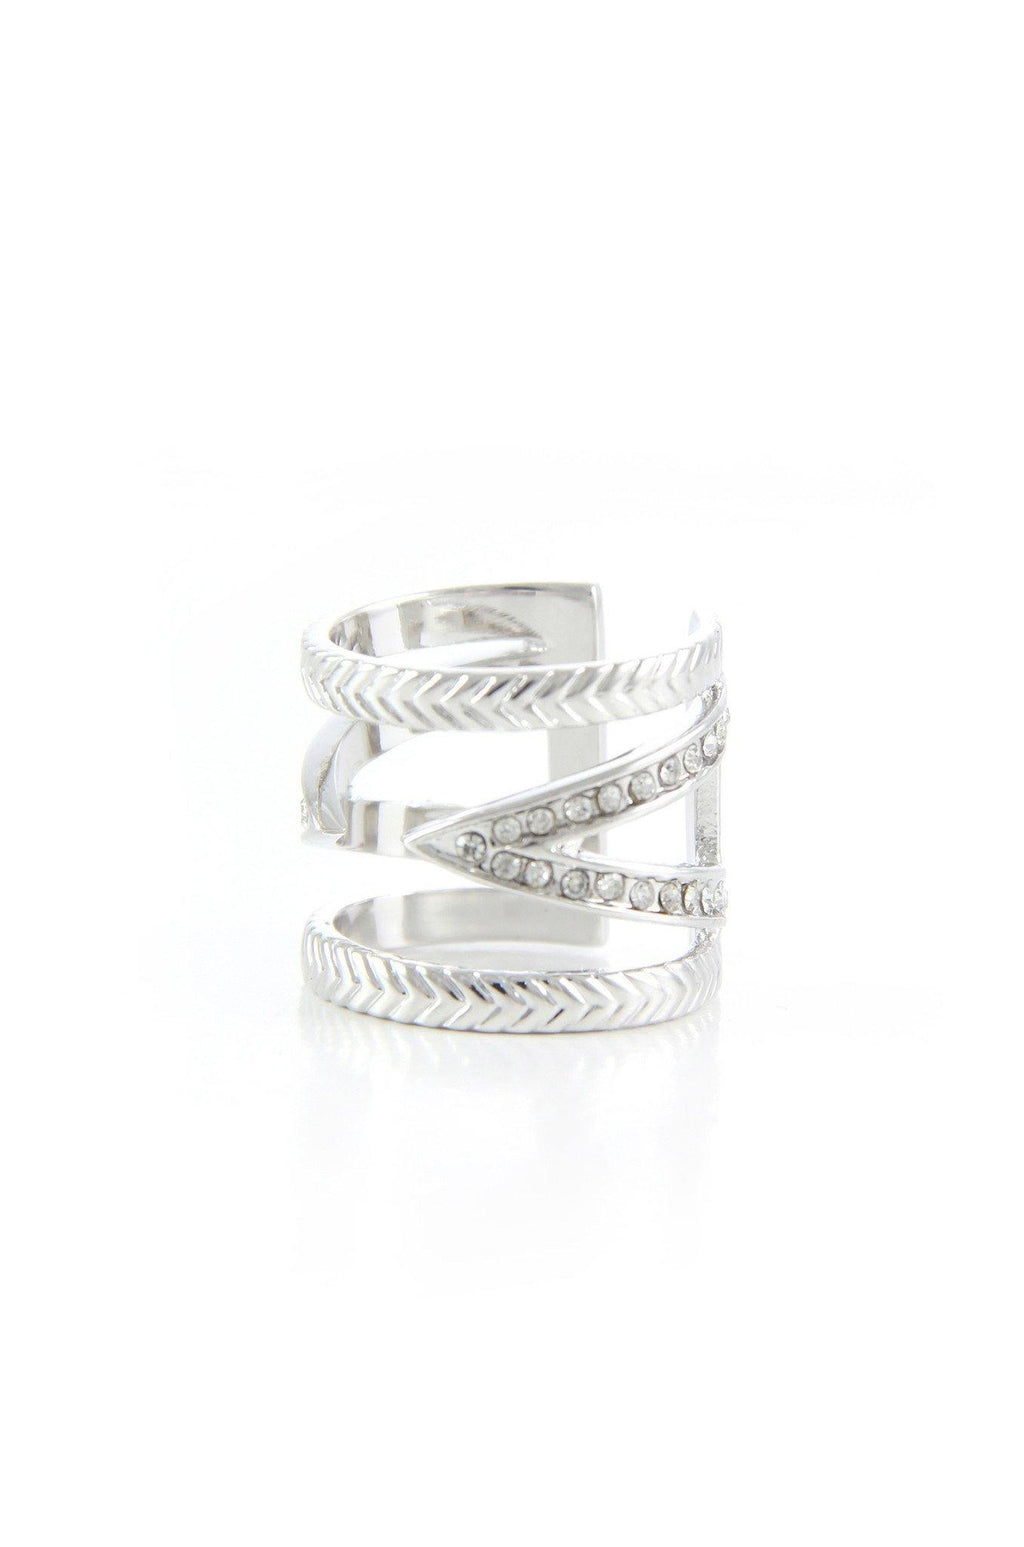 Break The Pattern Ring in Rhodium